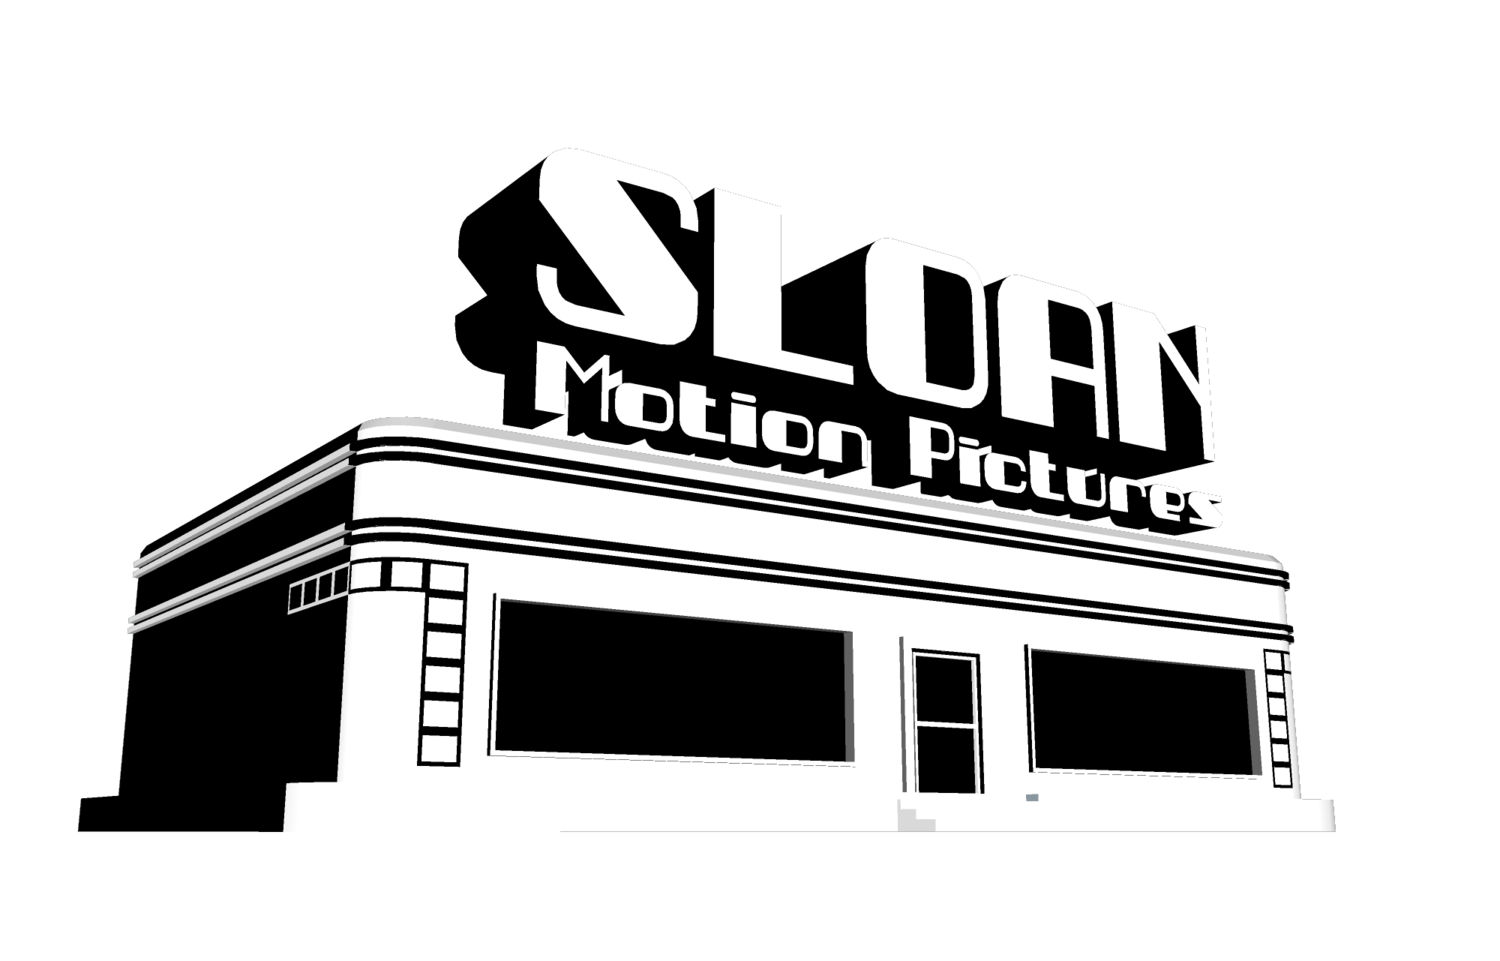 Sloan Motion Pictures